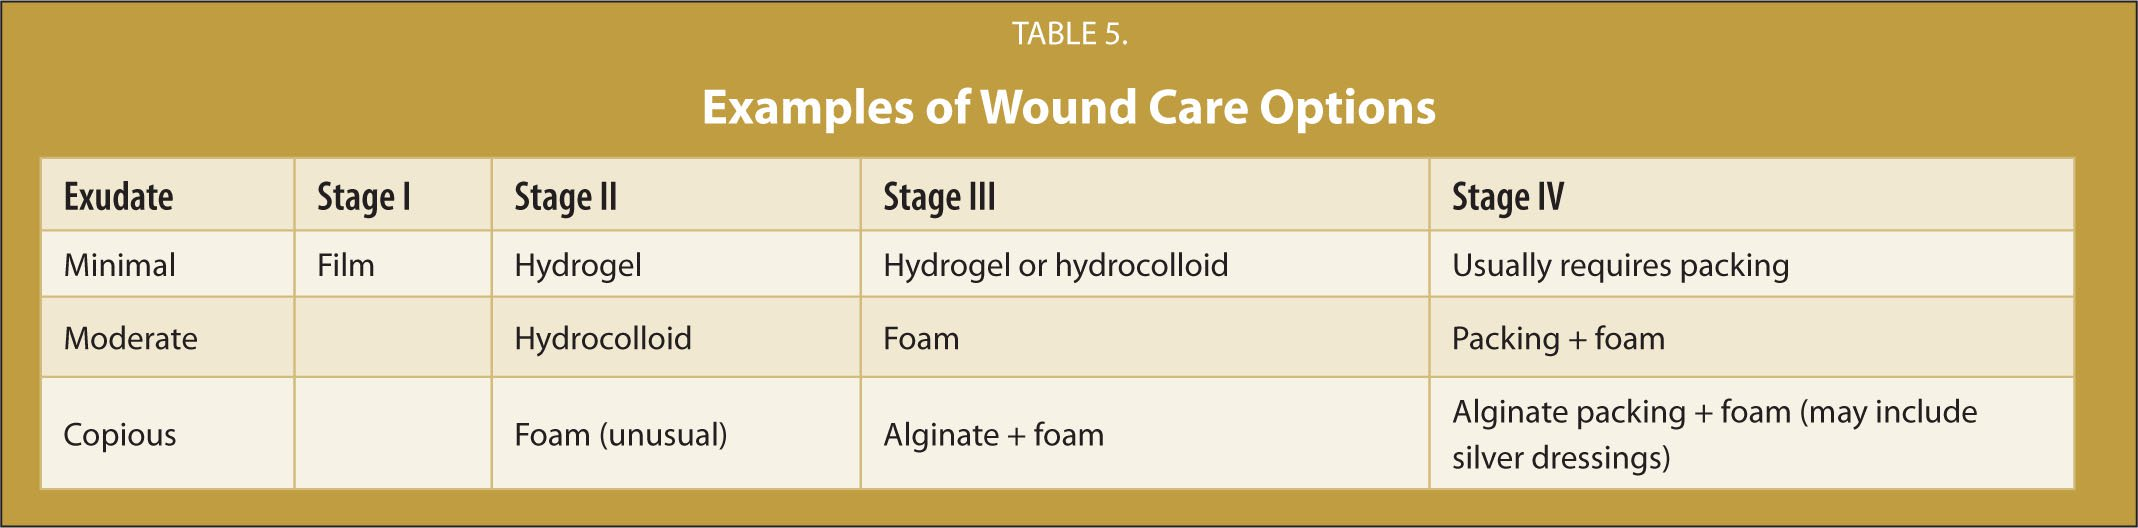 Examples of Wound Care Options